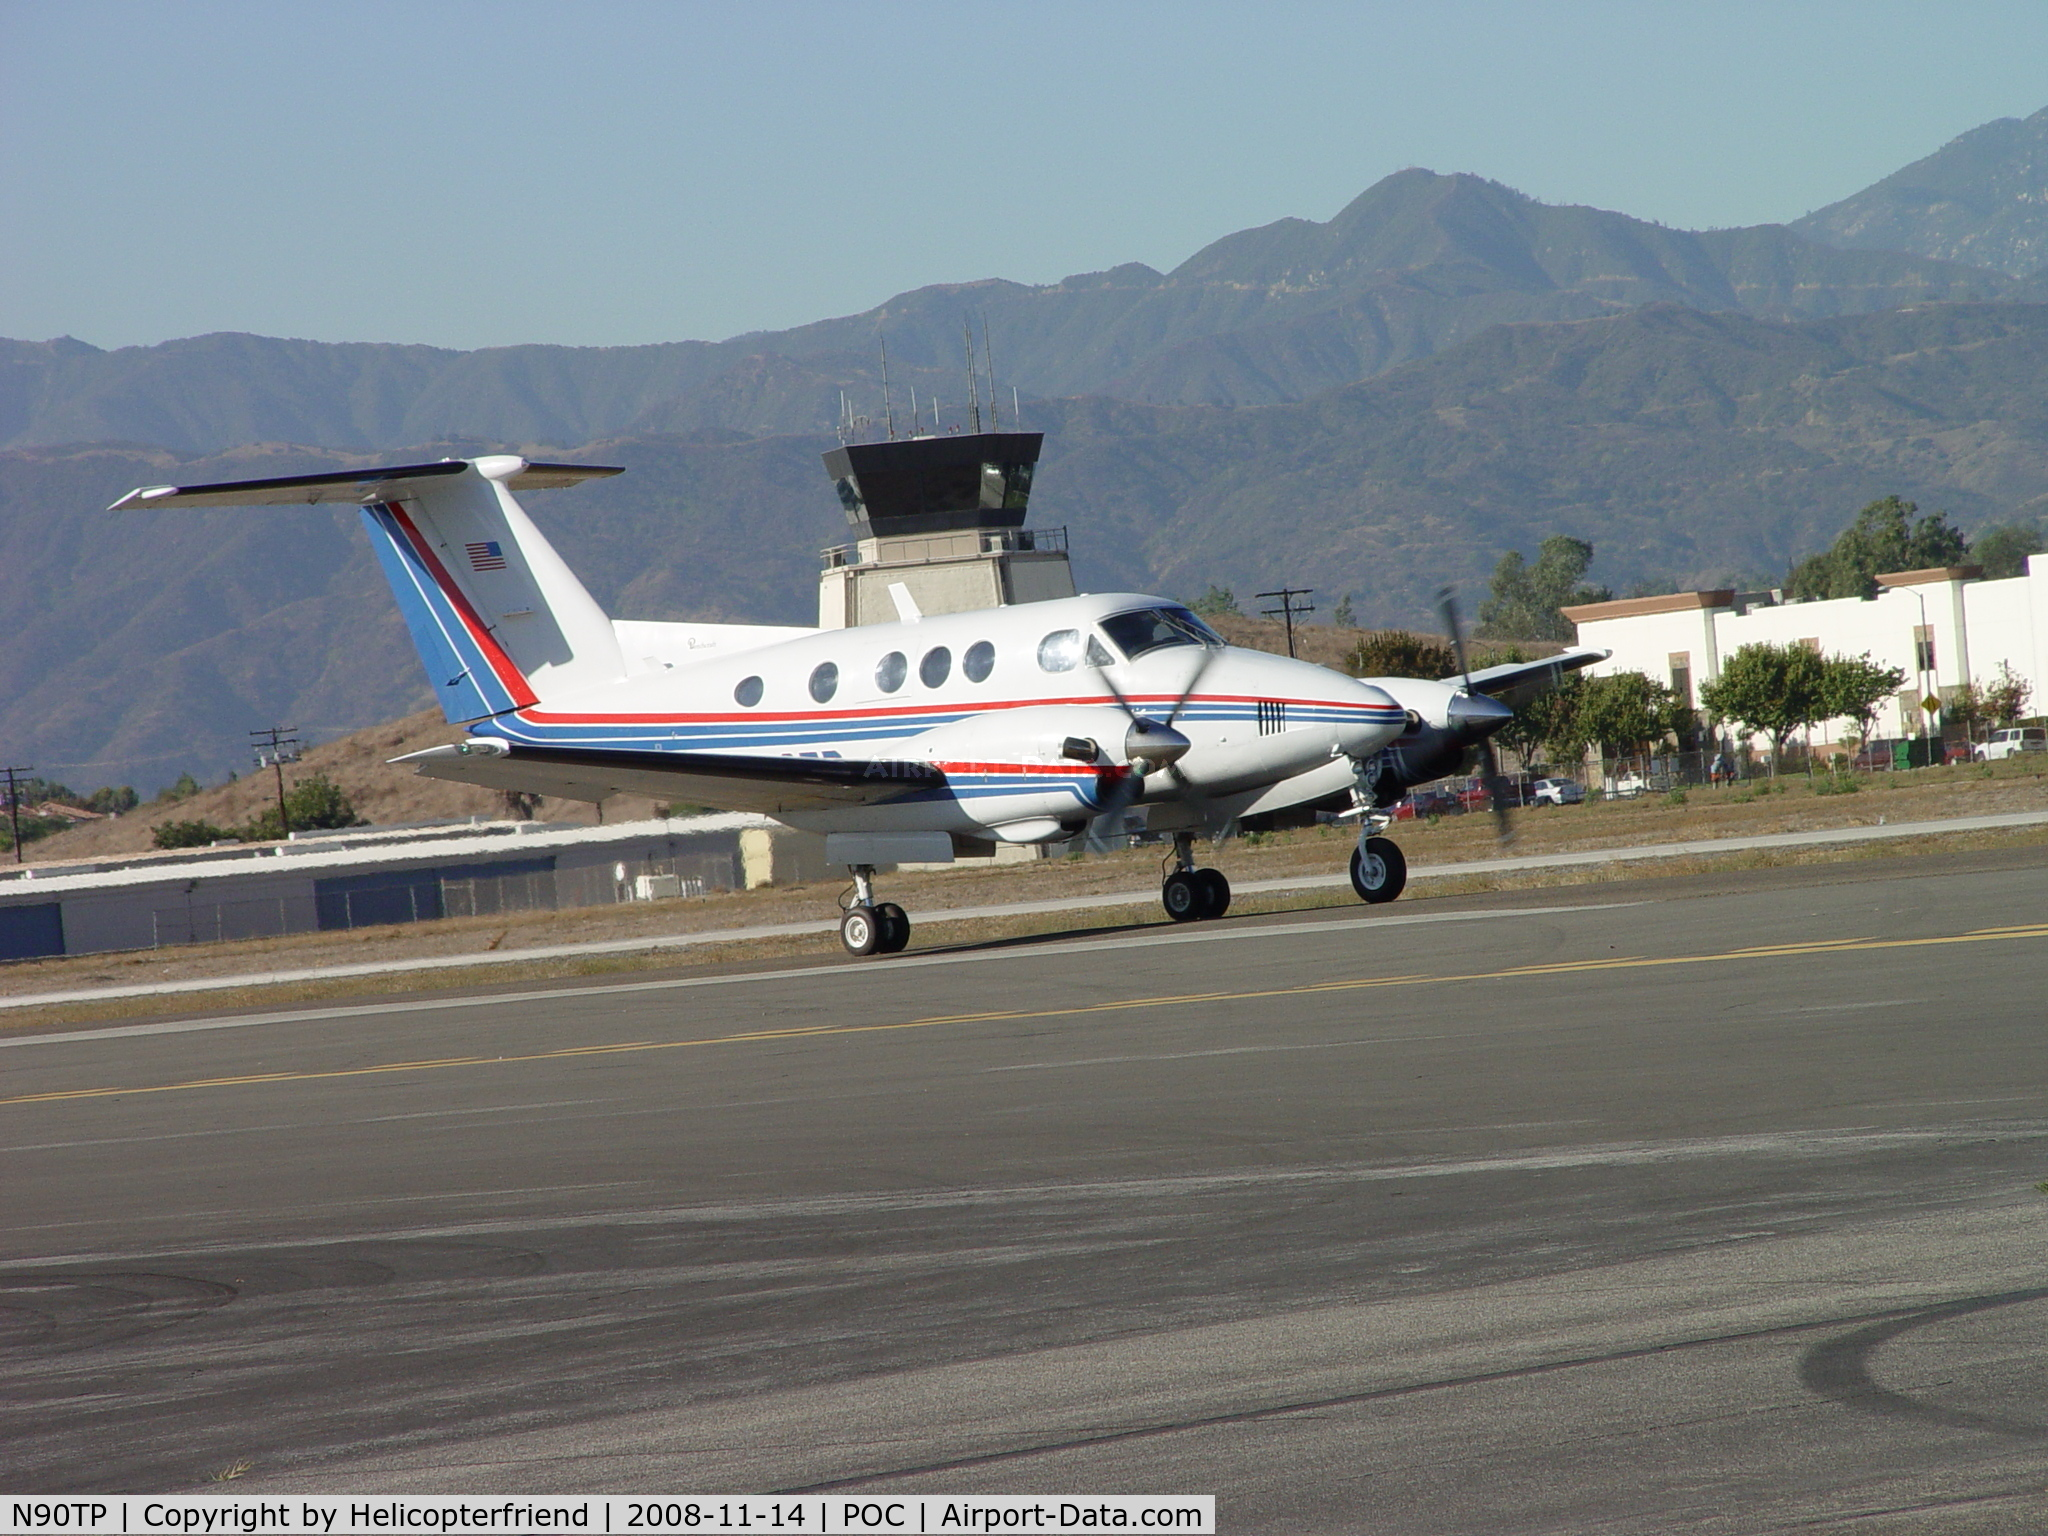 N90TP, 1980 Beech F90 King Air C/N LA-66, Taxiing for take off at Brackett